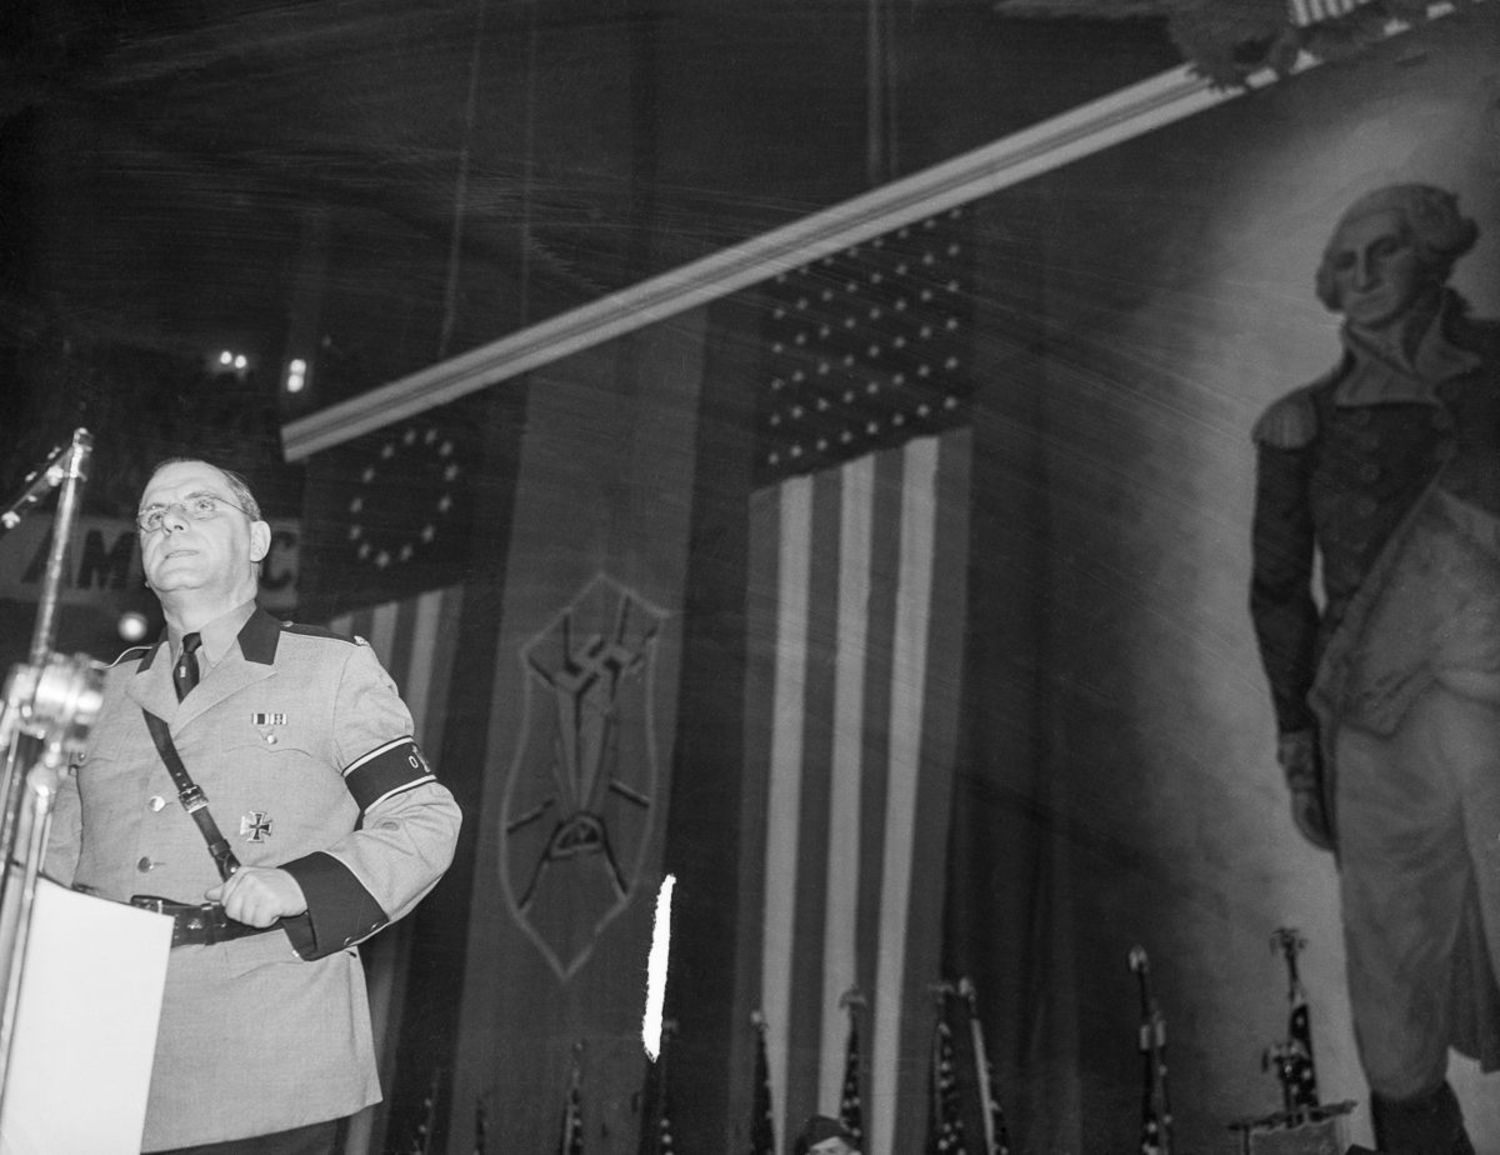 Fritz Kuhn, leader of the German American Bund, addresses the Nazi rally as protesters clash with police outside.